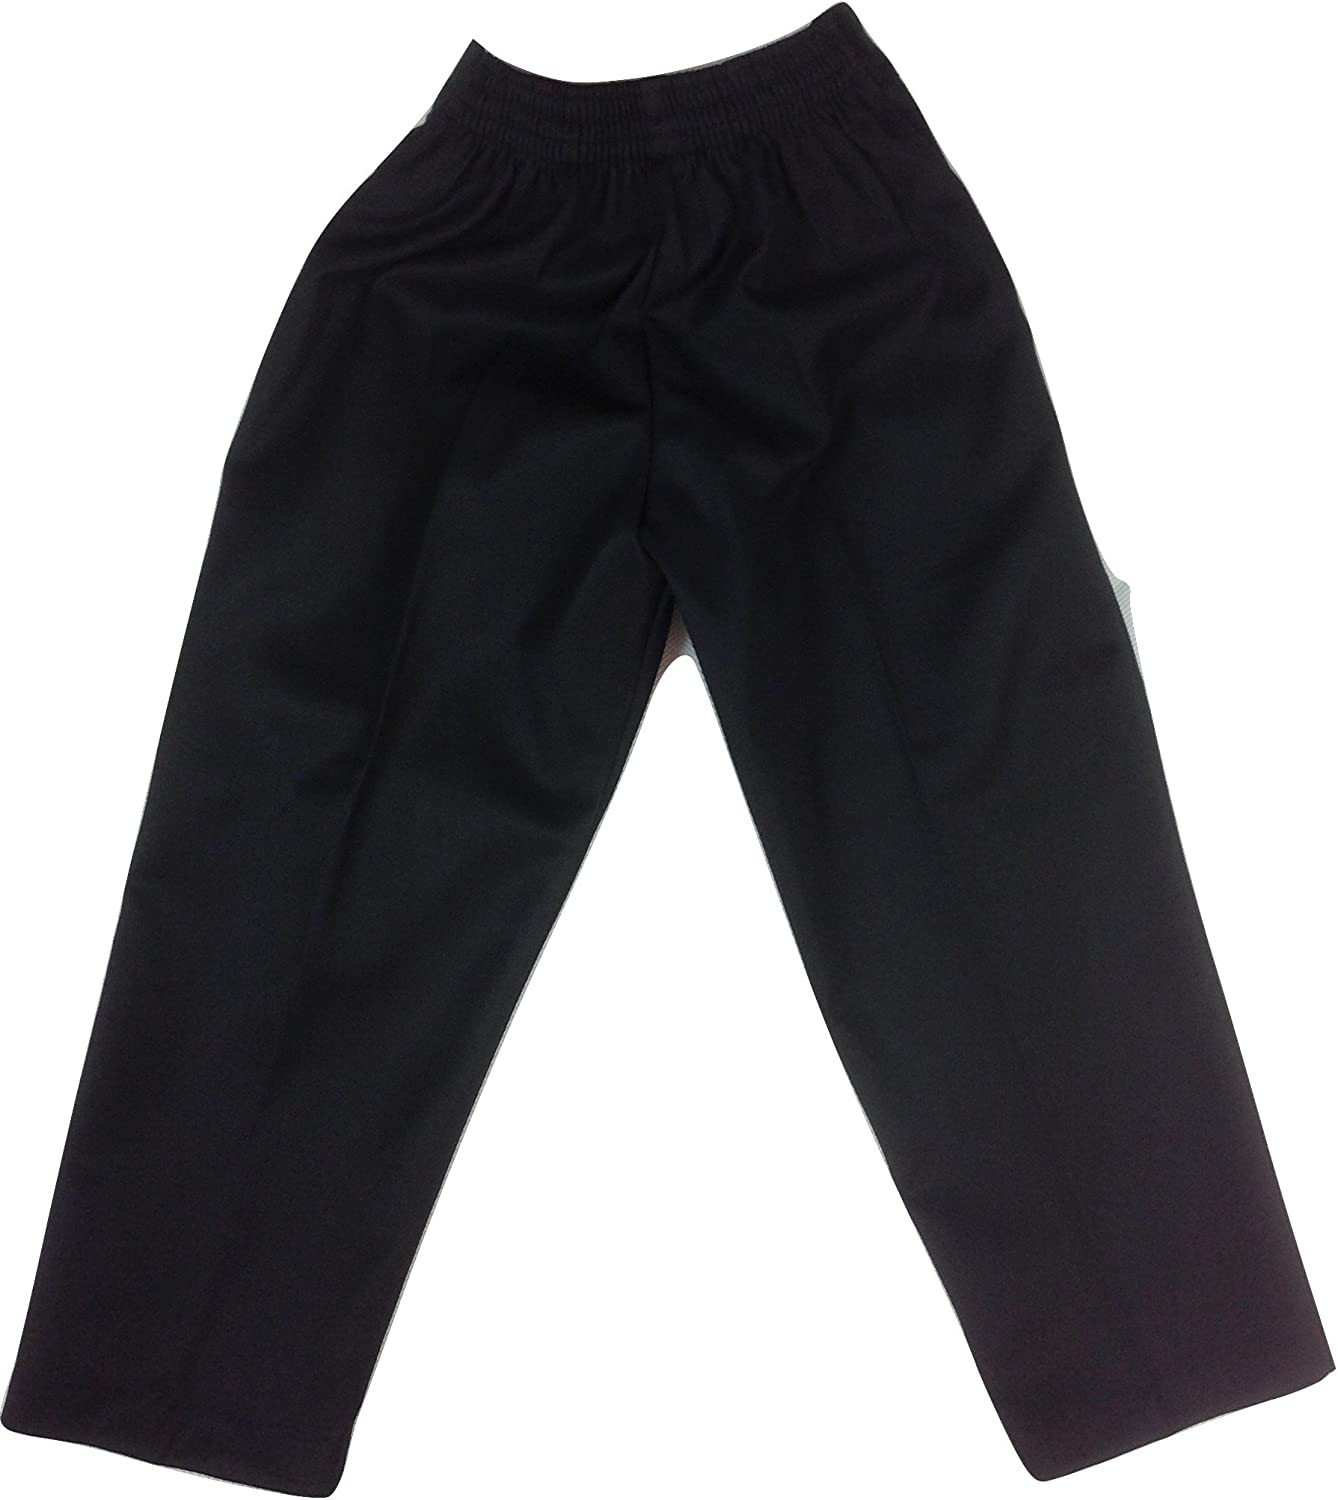 Boys GAB Trouser with Belt Superior Quality Half Elastic Waist Teflon School Formal Trousers Ages 4-14 years Schoolwear Kids Black Grey Charcoal Navy for comfort and ease Slip On